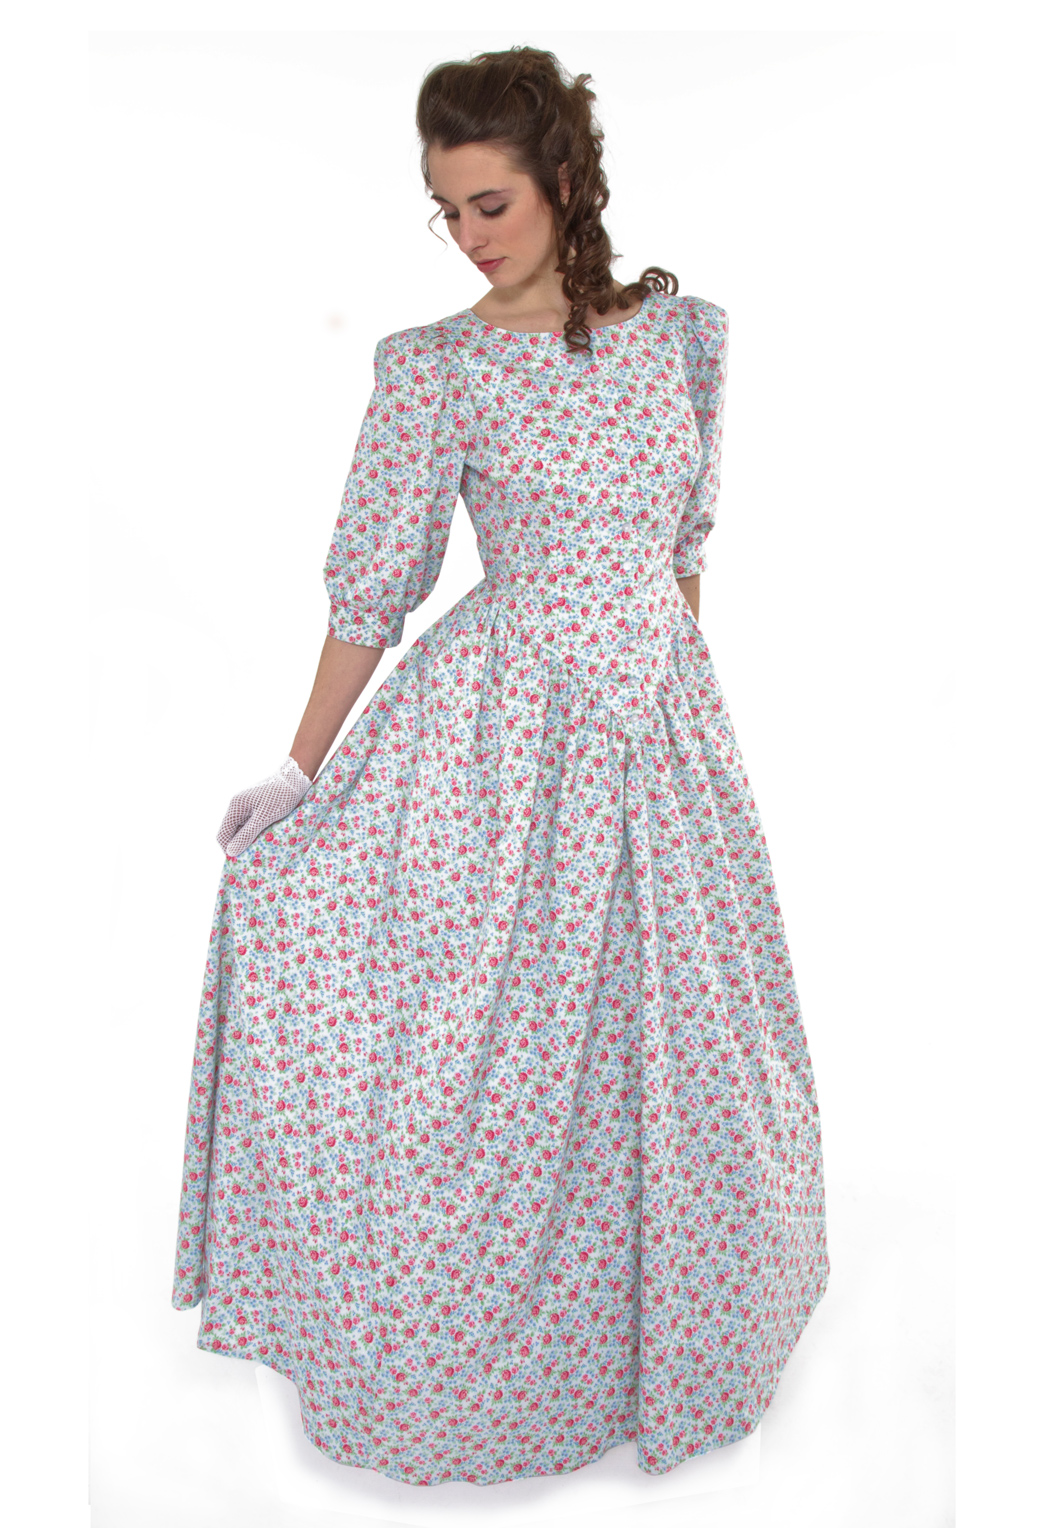 Wendy Victorian Dress Recollections